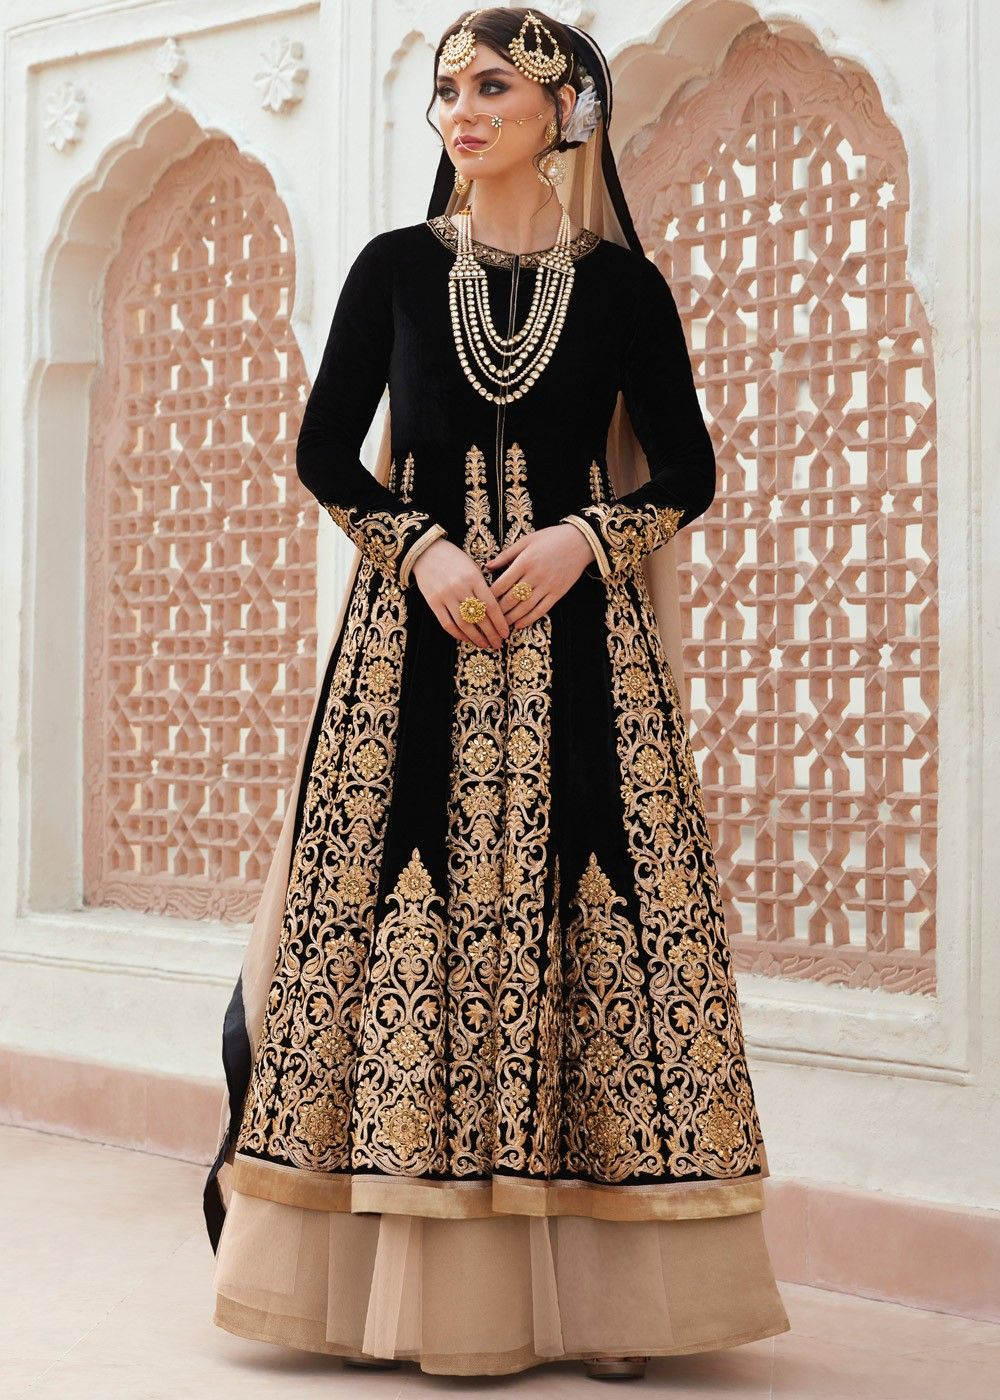 dfb9245cc8 Look marvellous in this #black #velvet #kurti style long #choli decked with zari  embroidery, lace and stone work.